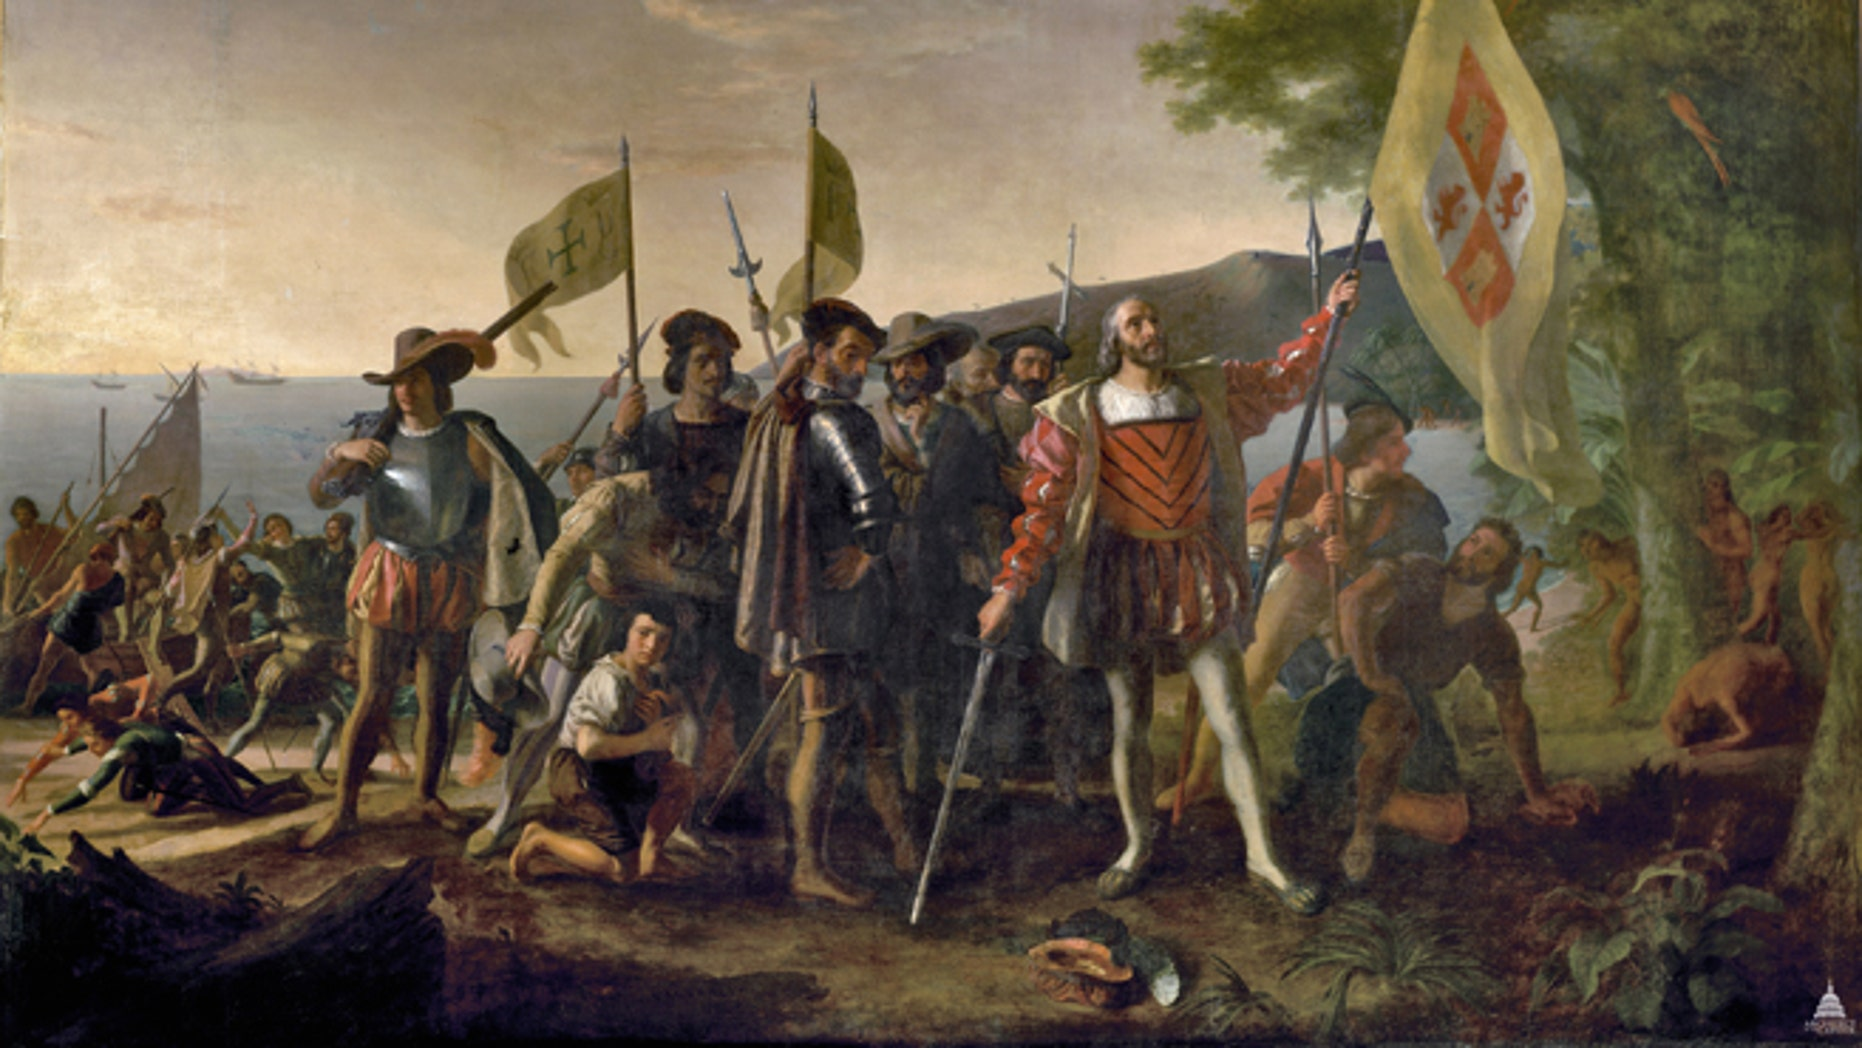 Christopher Columbus and members of his crew on a beach in the West Indies, newly landed from his flagship Santa Maria on October 12, 1492.